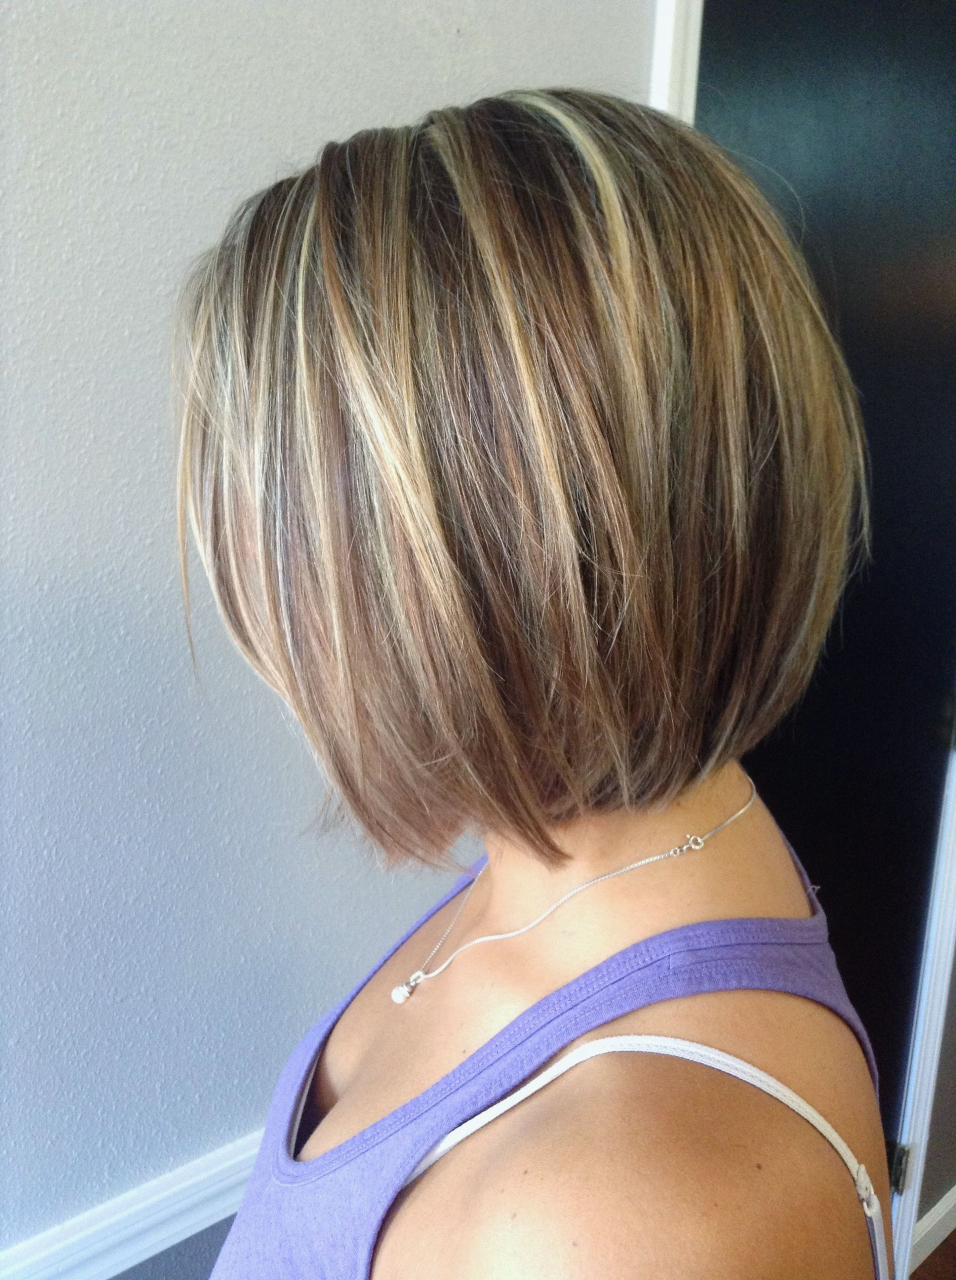 24 Coolest Short Hairstyles With Highlights | Fashion Health Pertaining To Short Bob Hairstyles With Highlights (View 2 of 20)